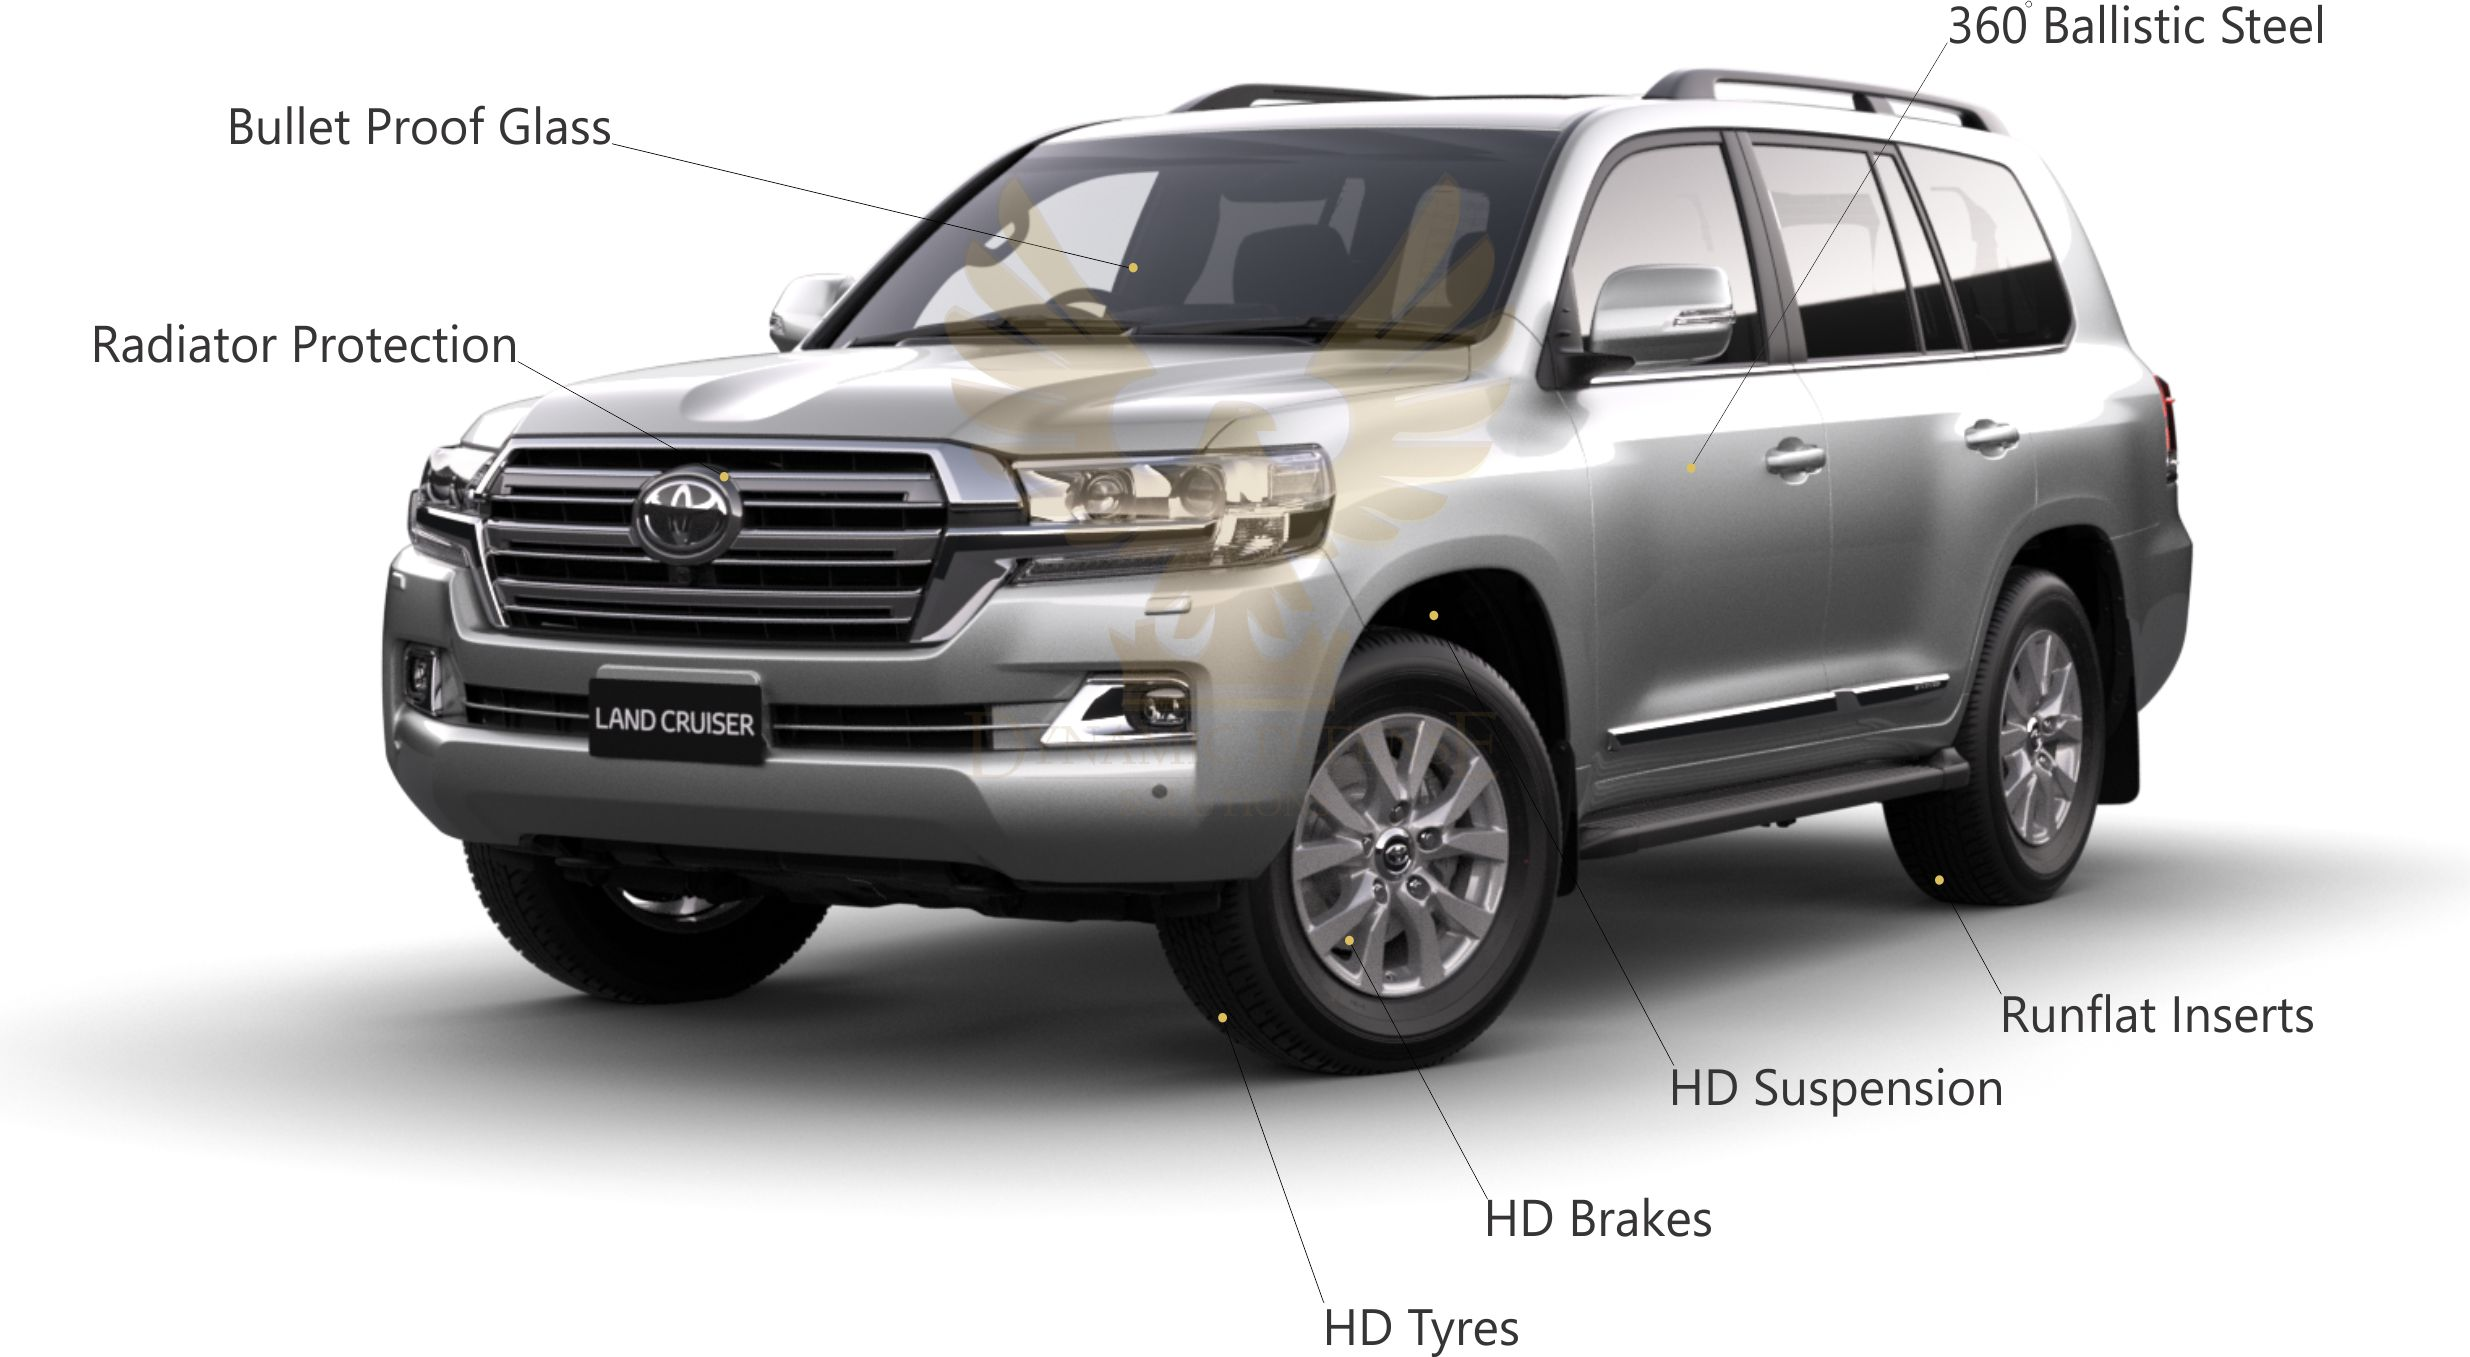 Top reasons to buy armored cars and trucks